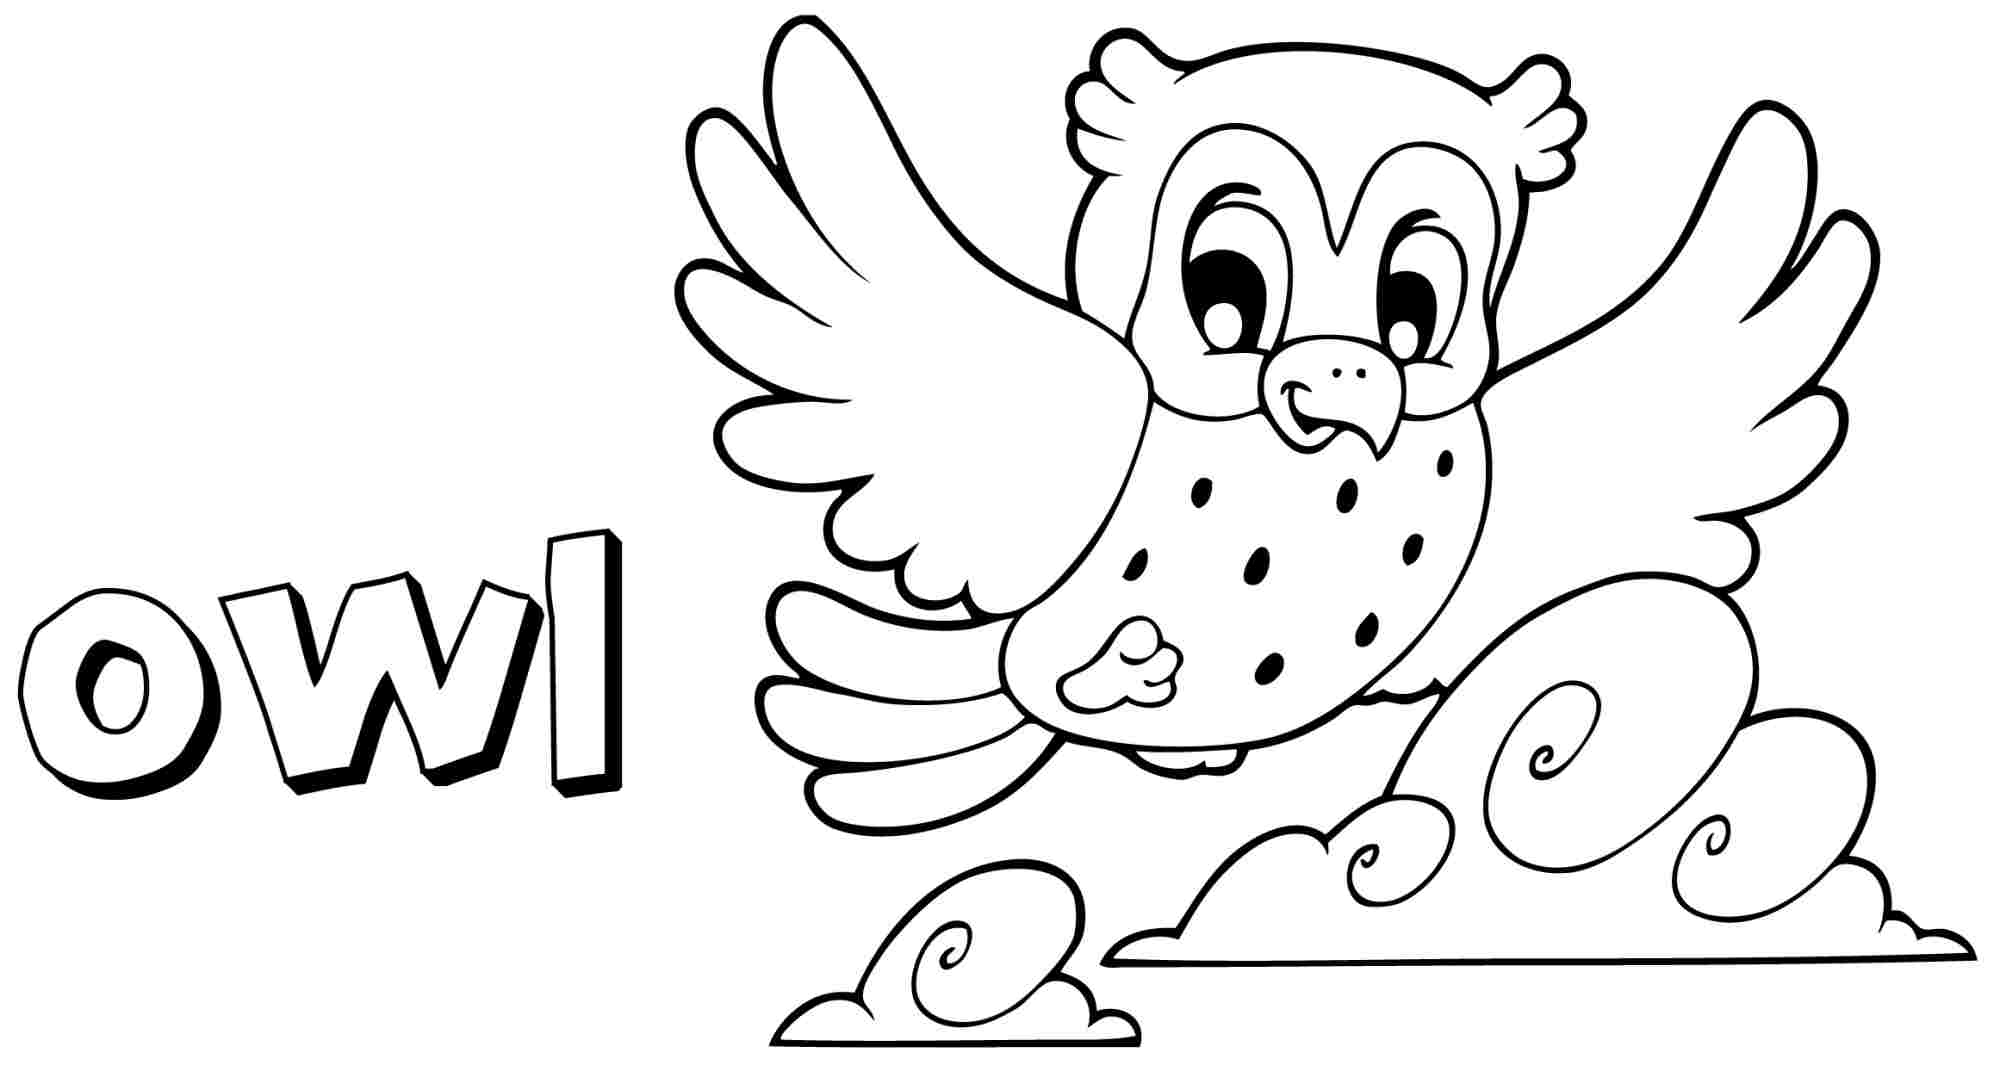 Coloring Pages Printable Coloring Pages Of Owls cute owl coloring pages az free image 21 voteforverde com